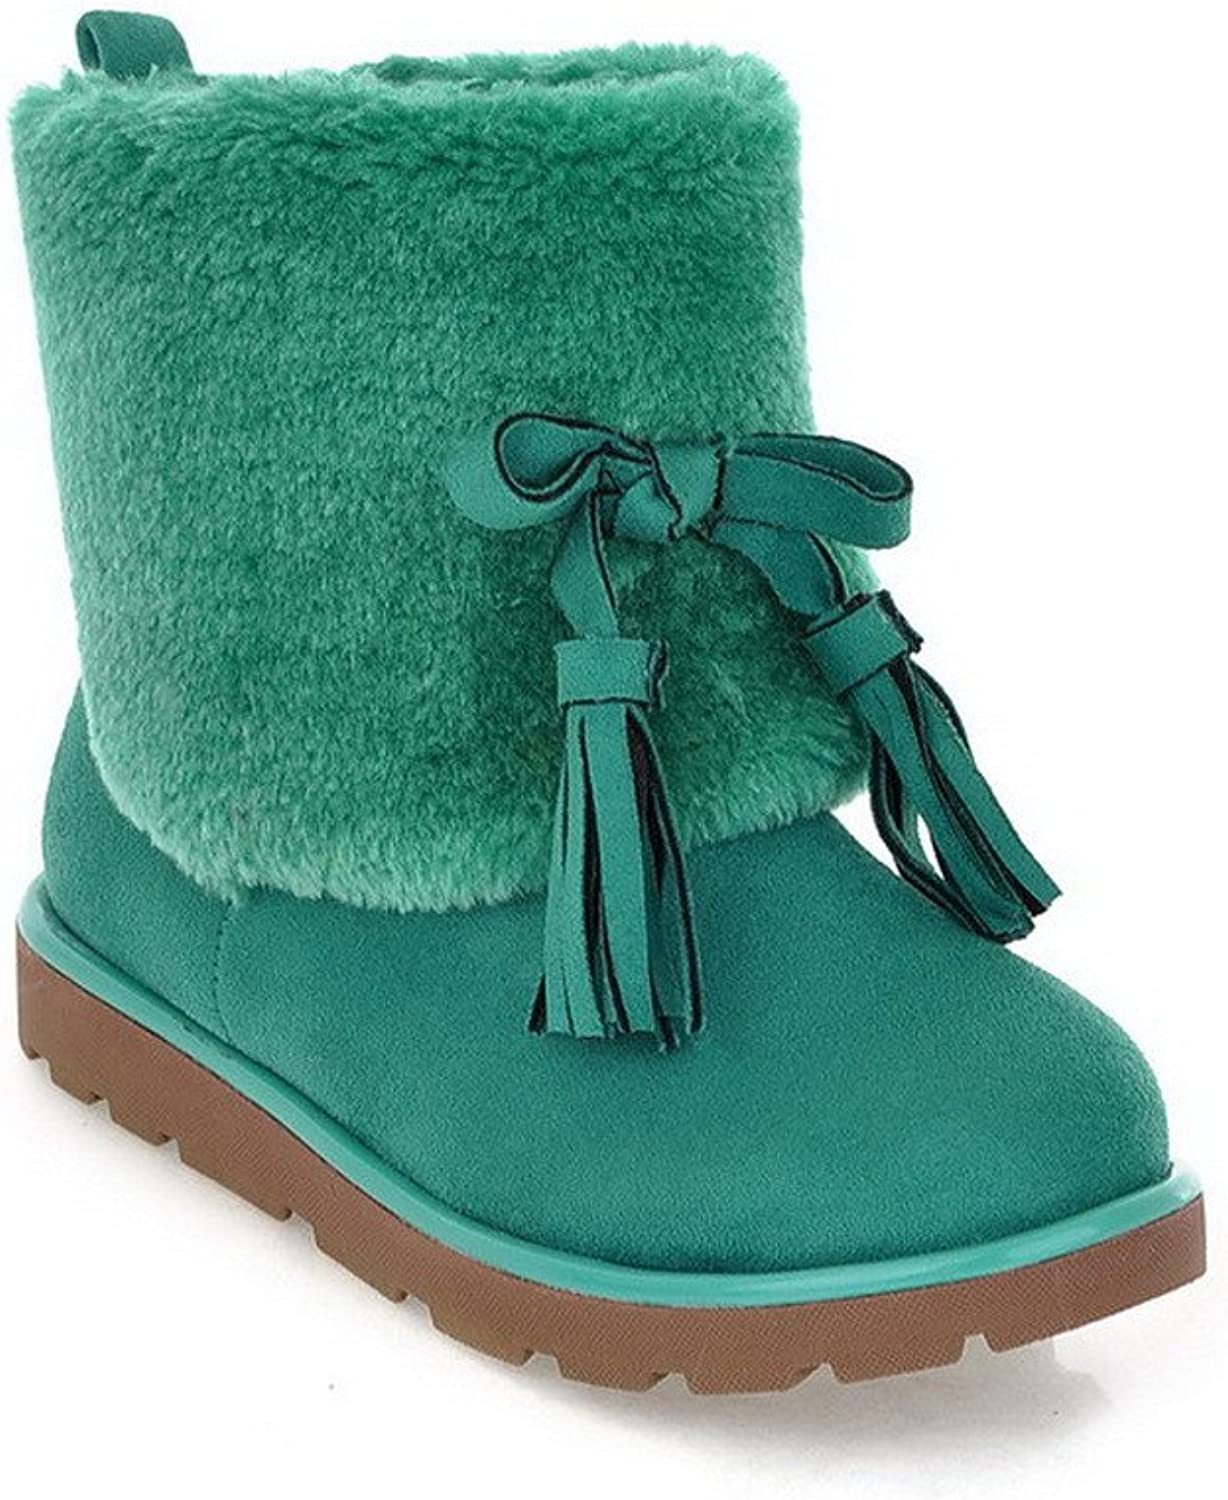 AmoonyFashion Womens Round Closed Toe Low Heels PU Frosted Short Plush Solid Boots with Tassels, Green, 7.5 B(M) US